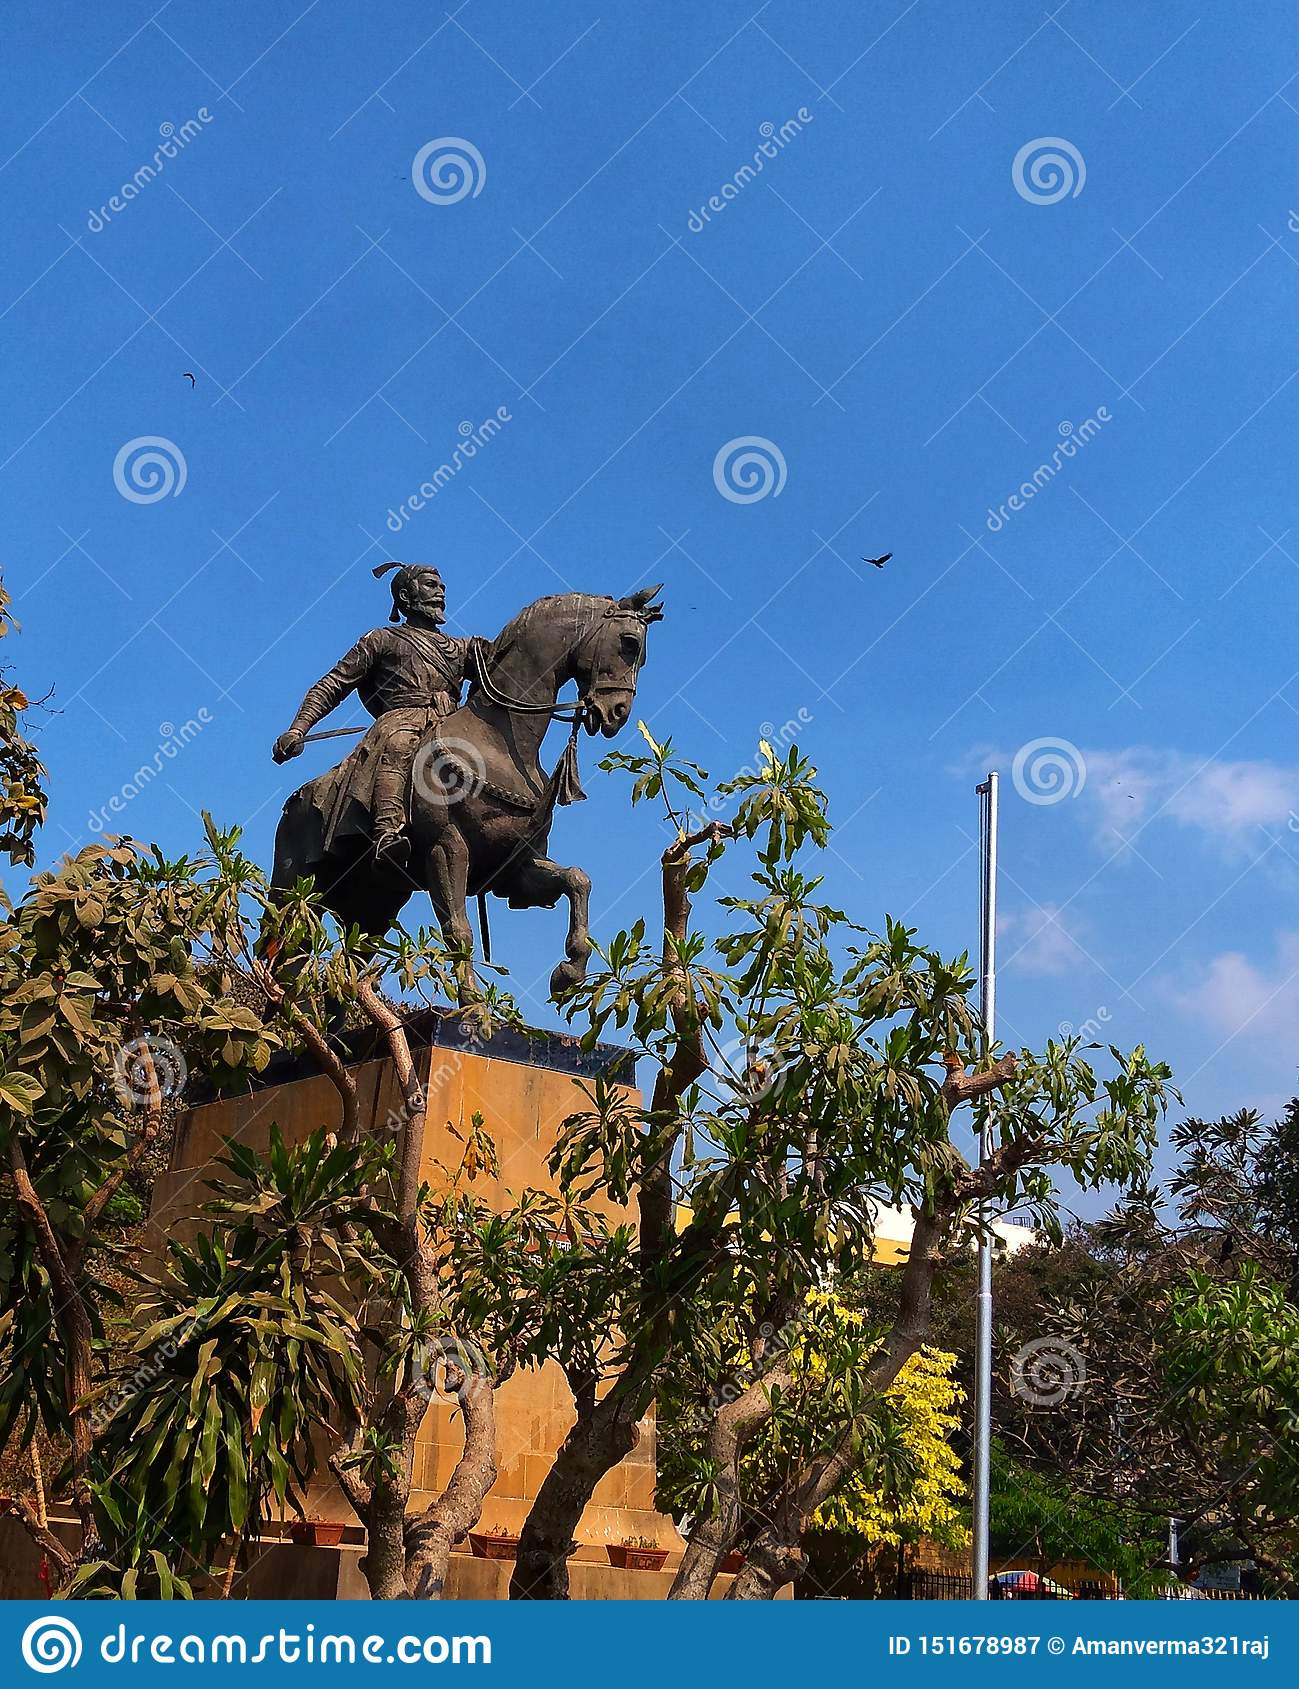 Statue Of Indian warrior king known as Chhatrapati Shivaji Maharaj.